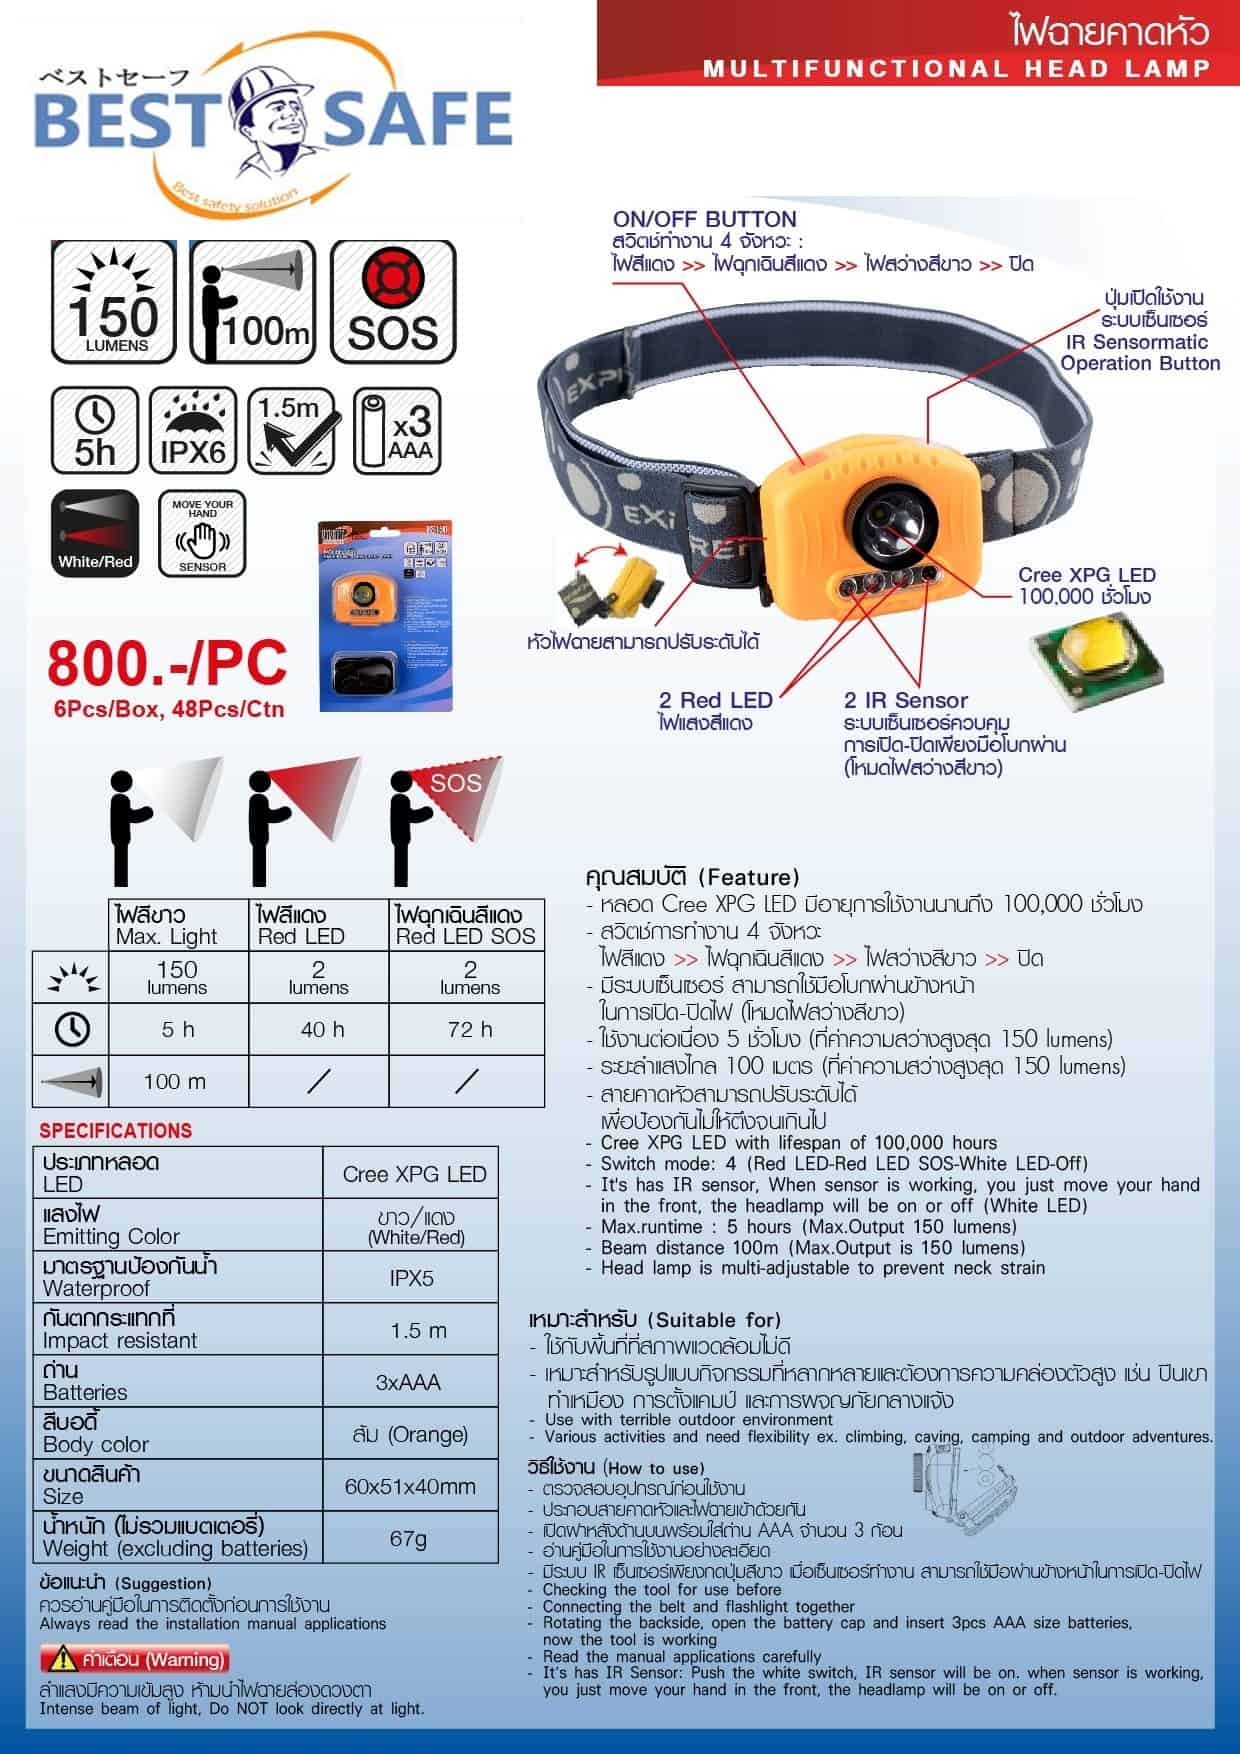 https://www.supersafetythailand.com/wp-content/uploads/2017/06/HeadLamp-catalog-01.jpg